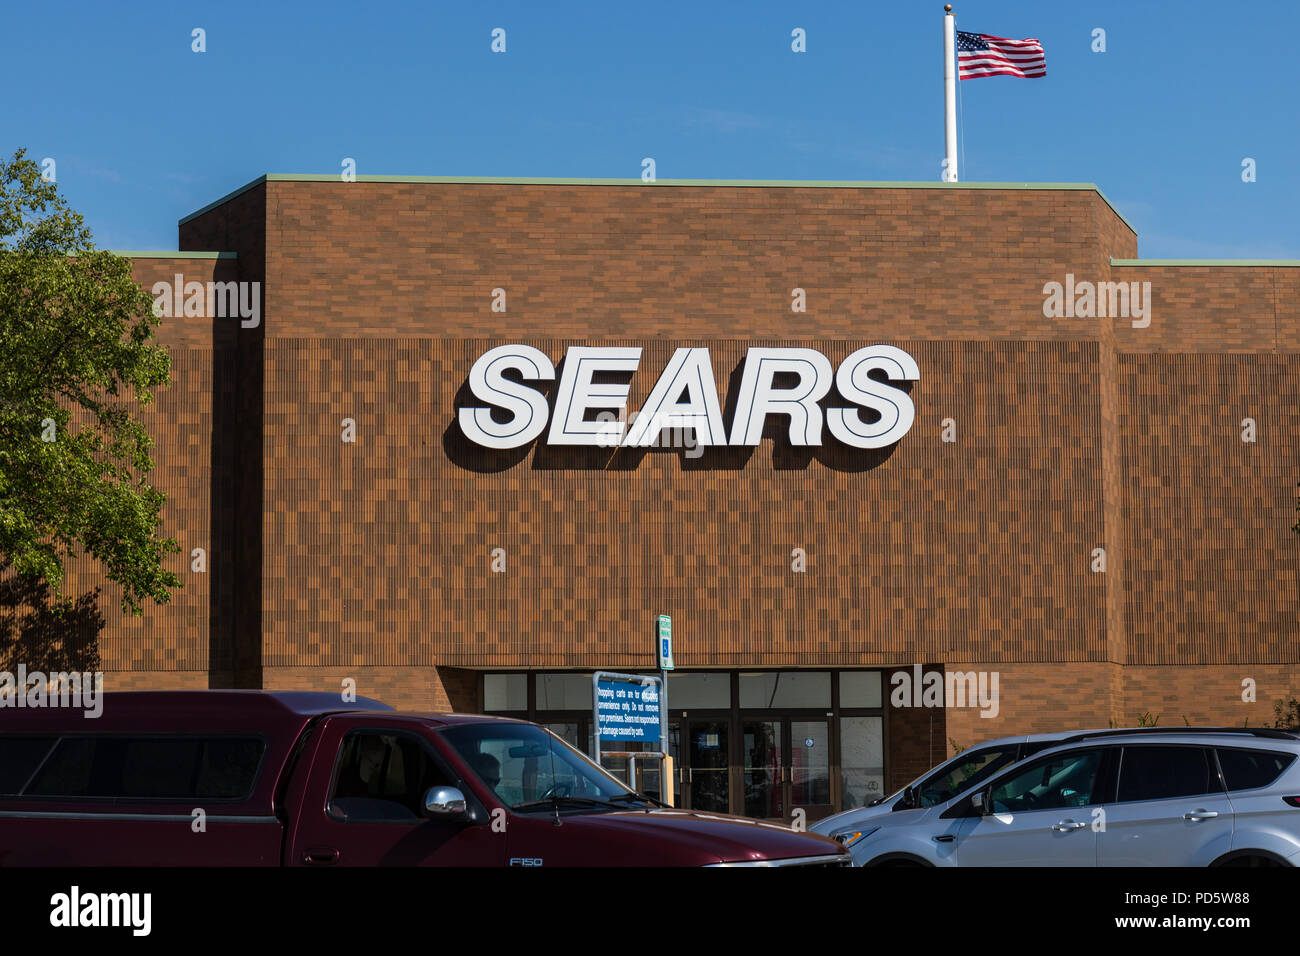 Sears Roebuck And Company Stock Photos & Sears Roebuck And Company ...